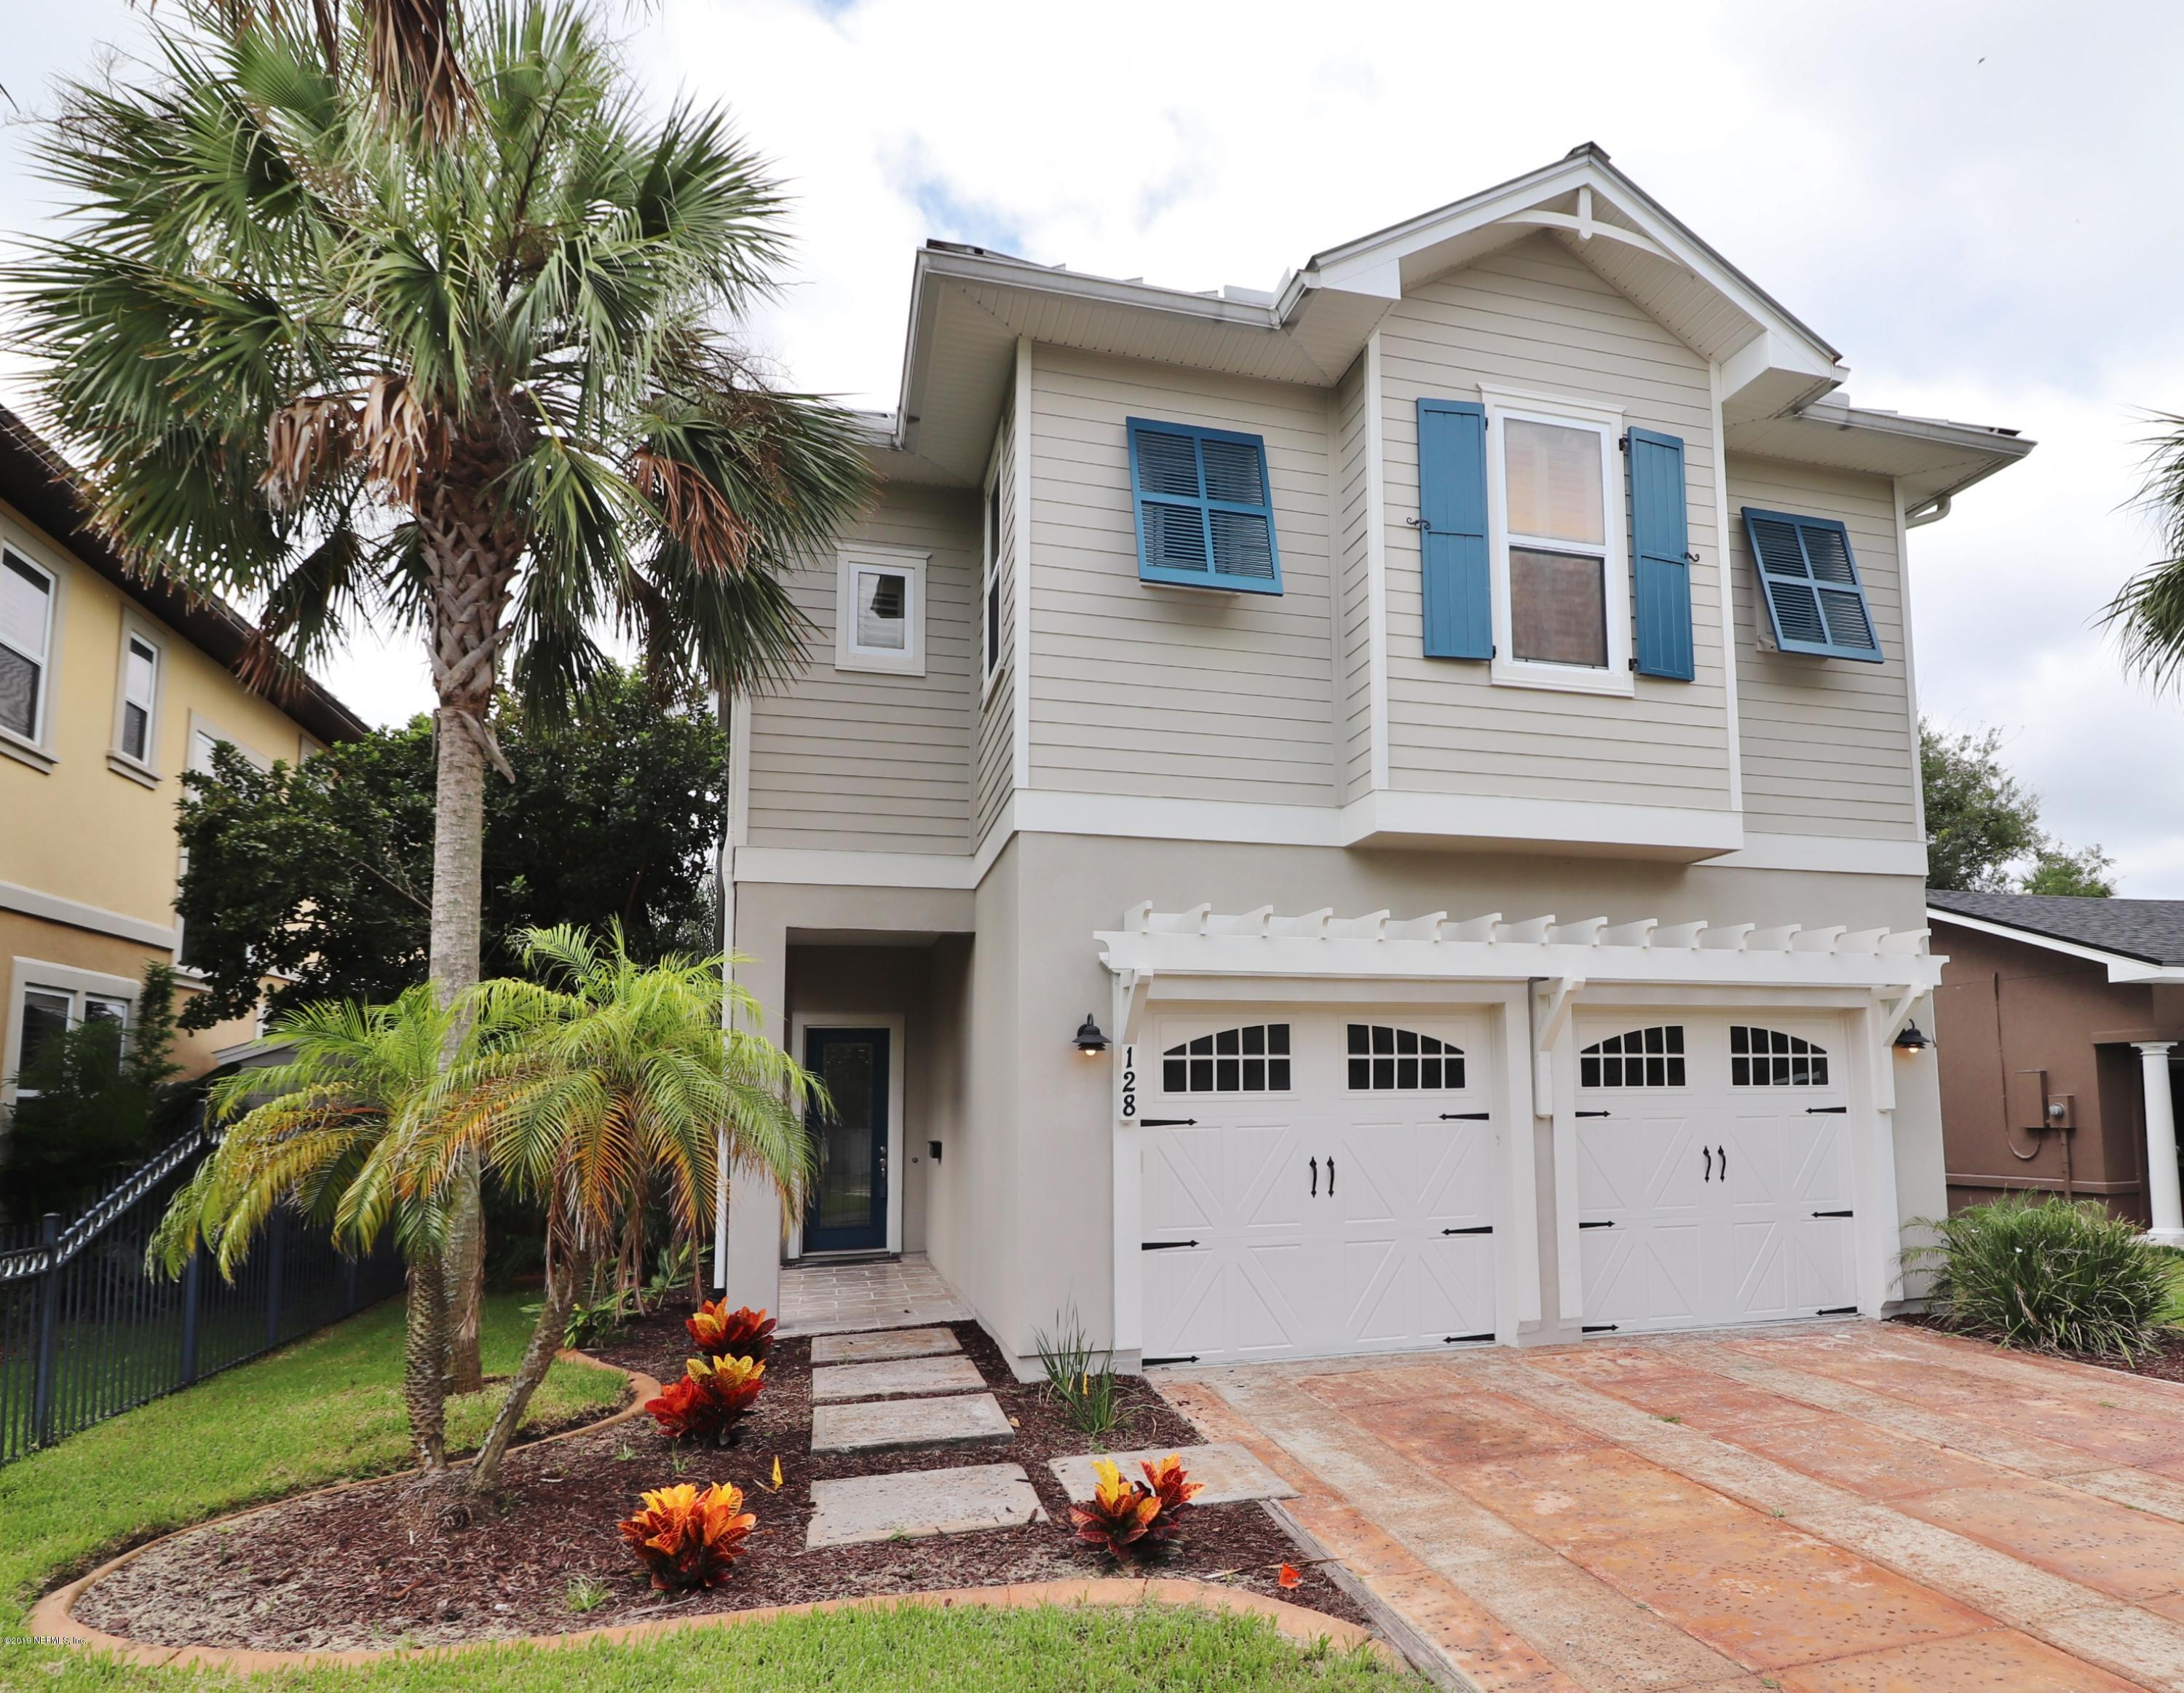 128 36TH, JACKSONVILLE BEACH, FLORIDA 32250, 5 Bedrooms Bedrooms, ,4 BathroomsBathrooms,Residential - single family,For sale,36TH,1021429